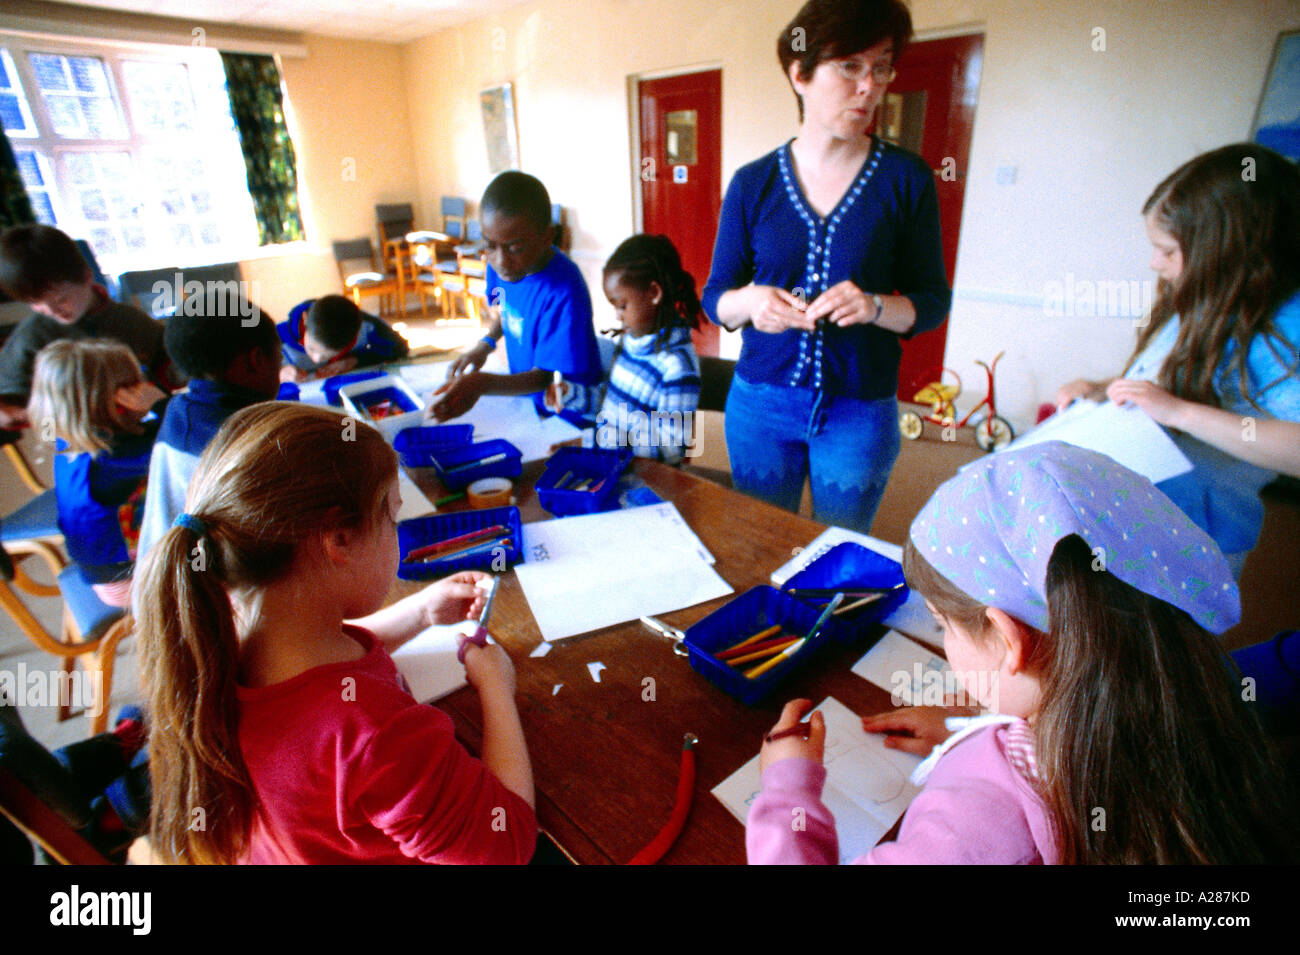 Sunday school children stock photos & sunday school children stock ...